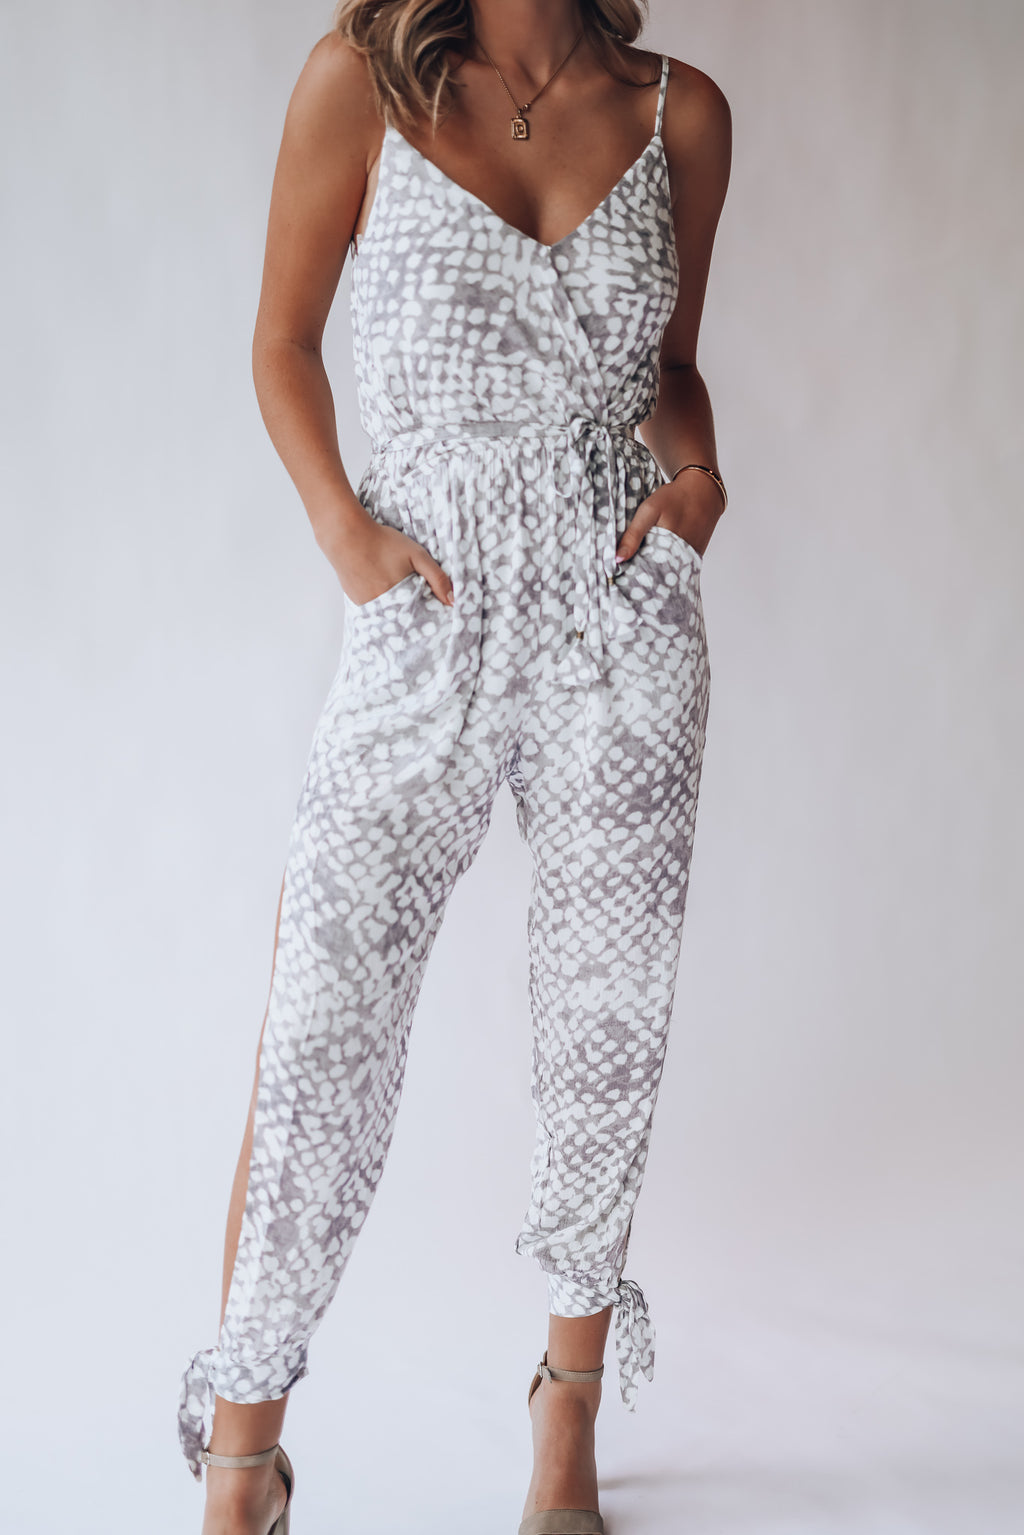 Wild About You Jumpsuit